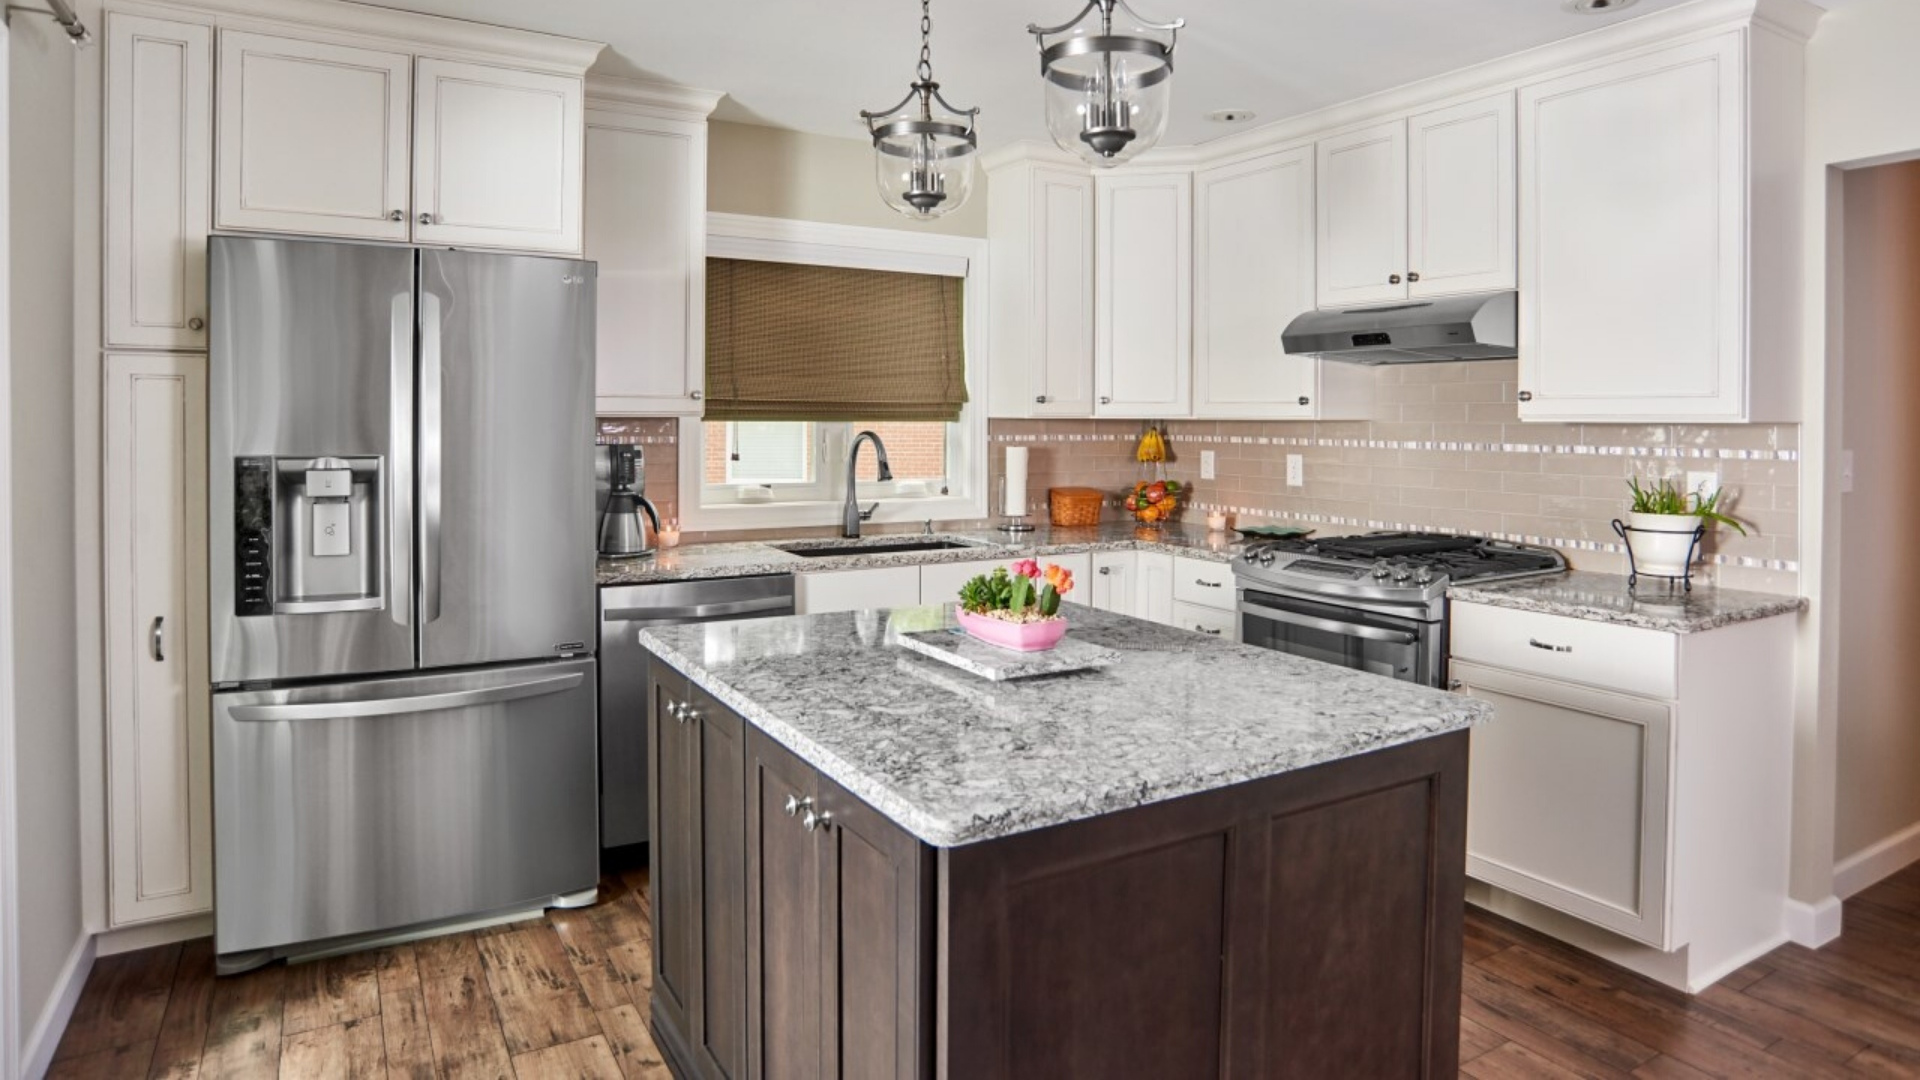 What S The Best Kitchen Countertop For Your St Louis Home Carrara Quartz Or Granite